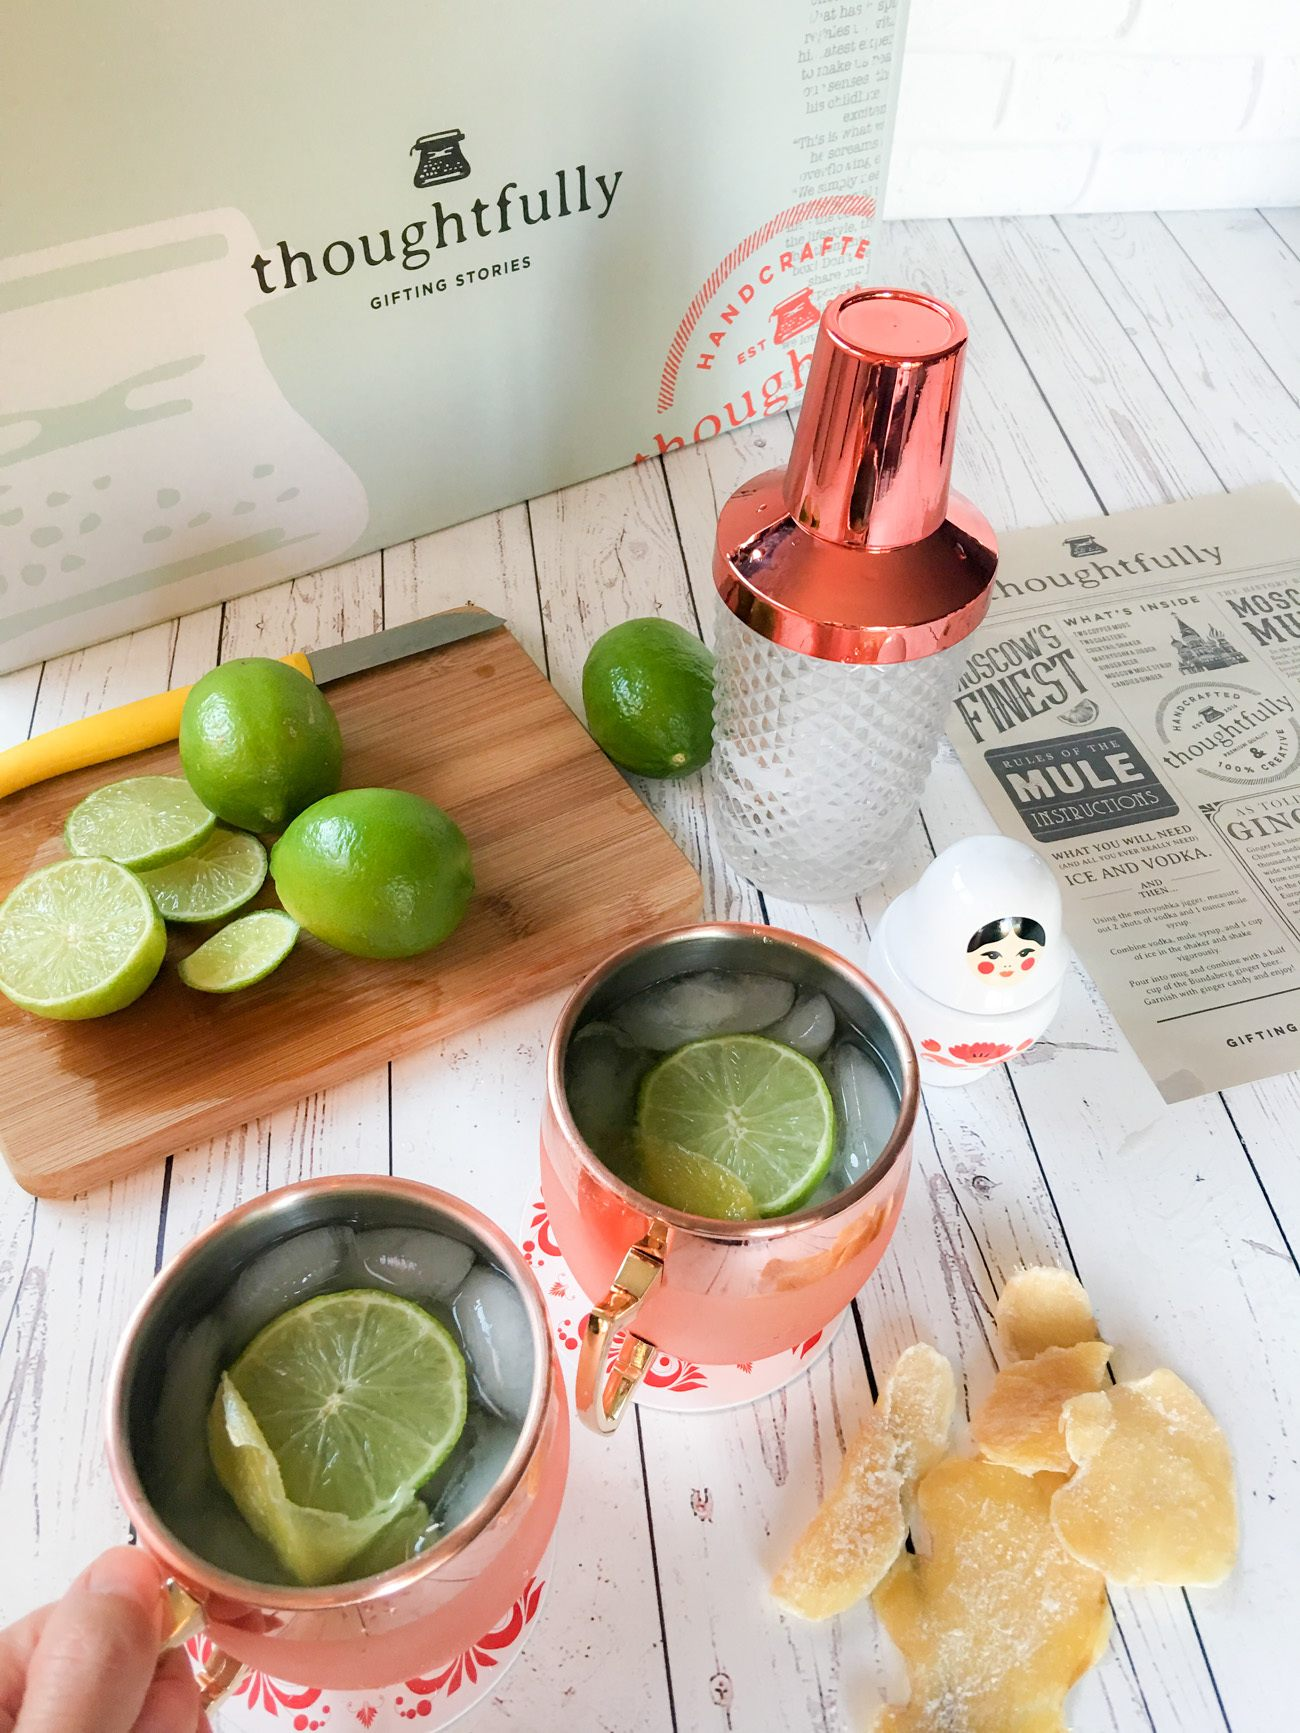 Holiday gift idea: The Moscow Mule gift box from Thoughtfully.